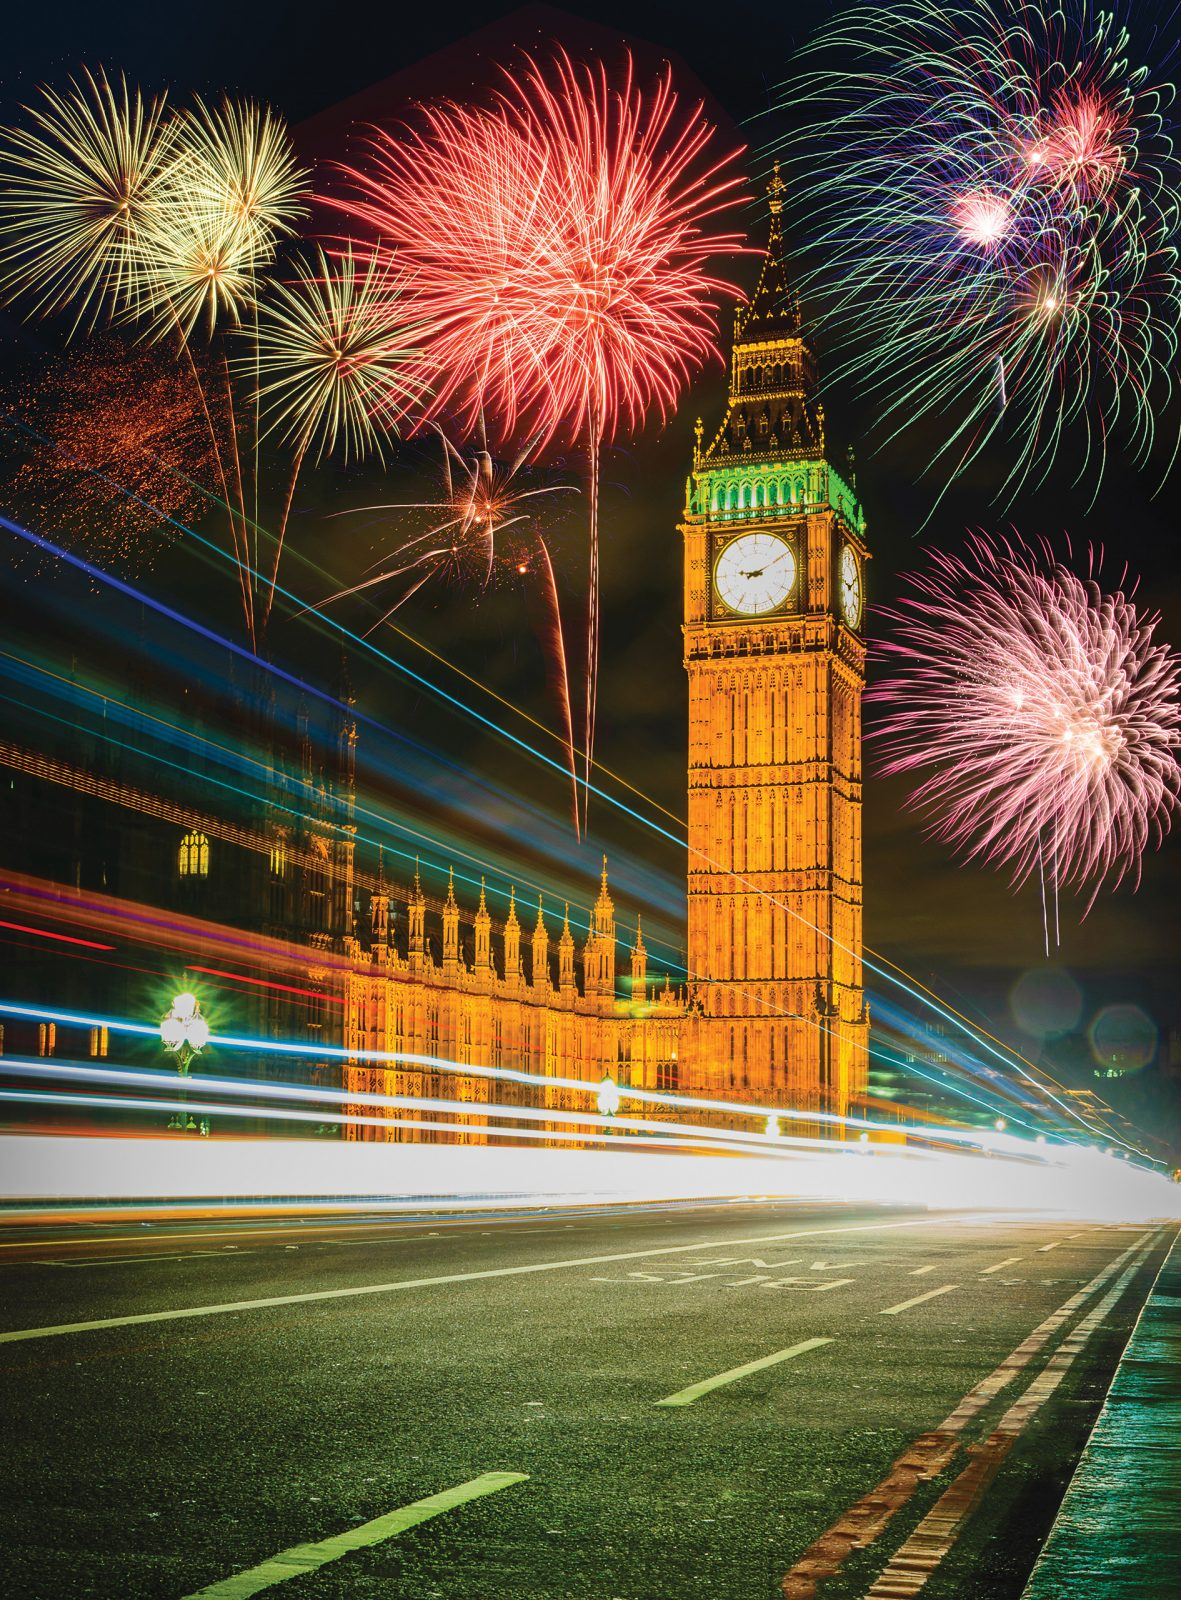 Parliamentary fireworks: MPs finally listen to pet owners